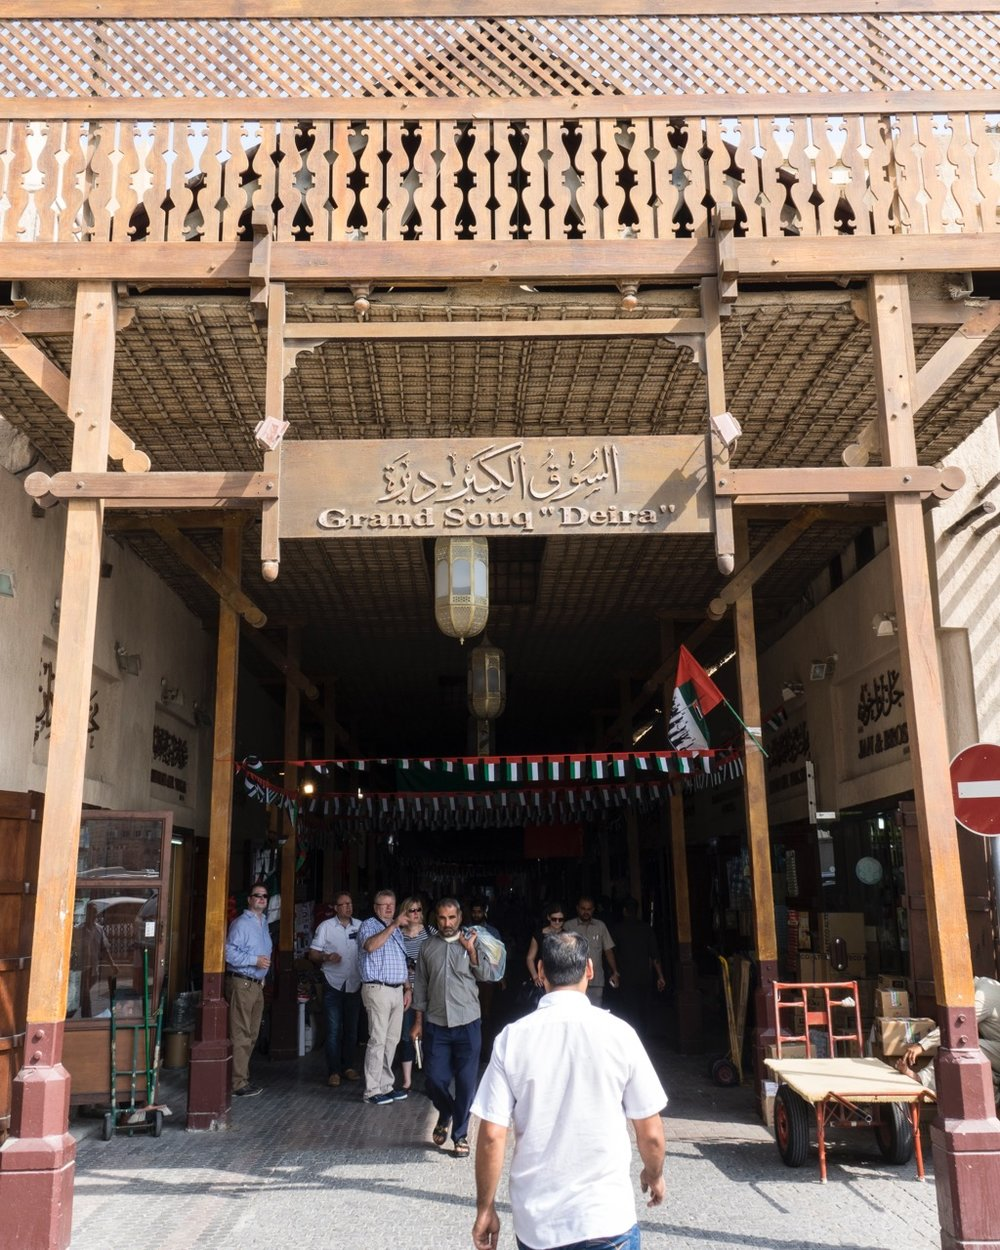 Many of the souqs have grand entrances.